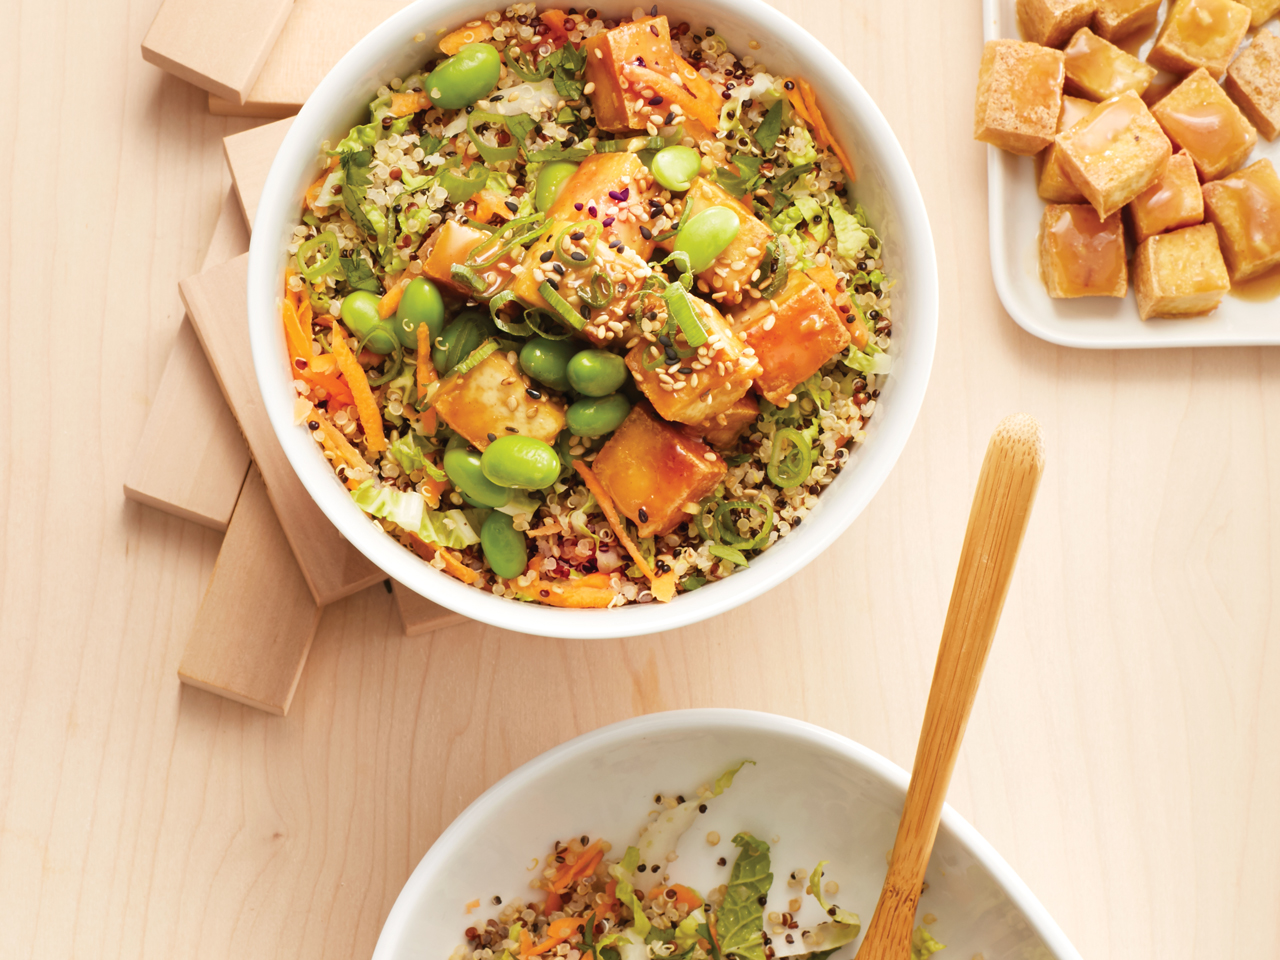 bowl of tofu quinoa stir-fry